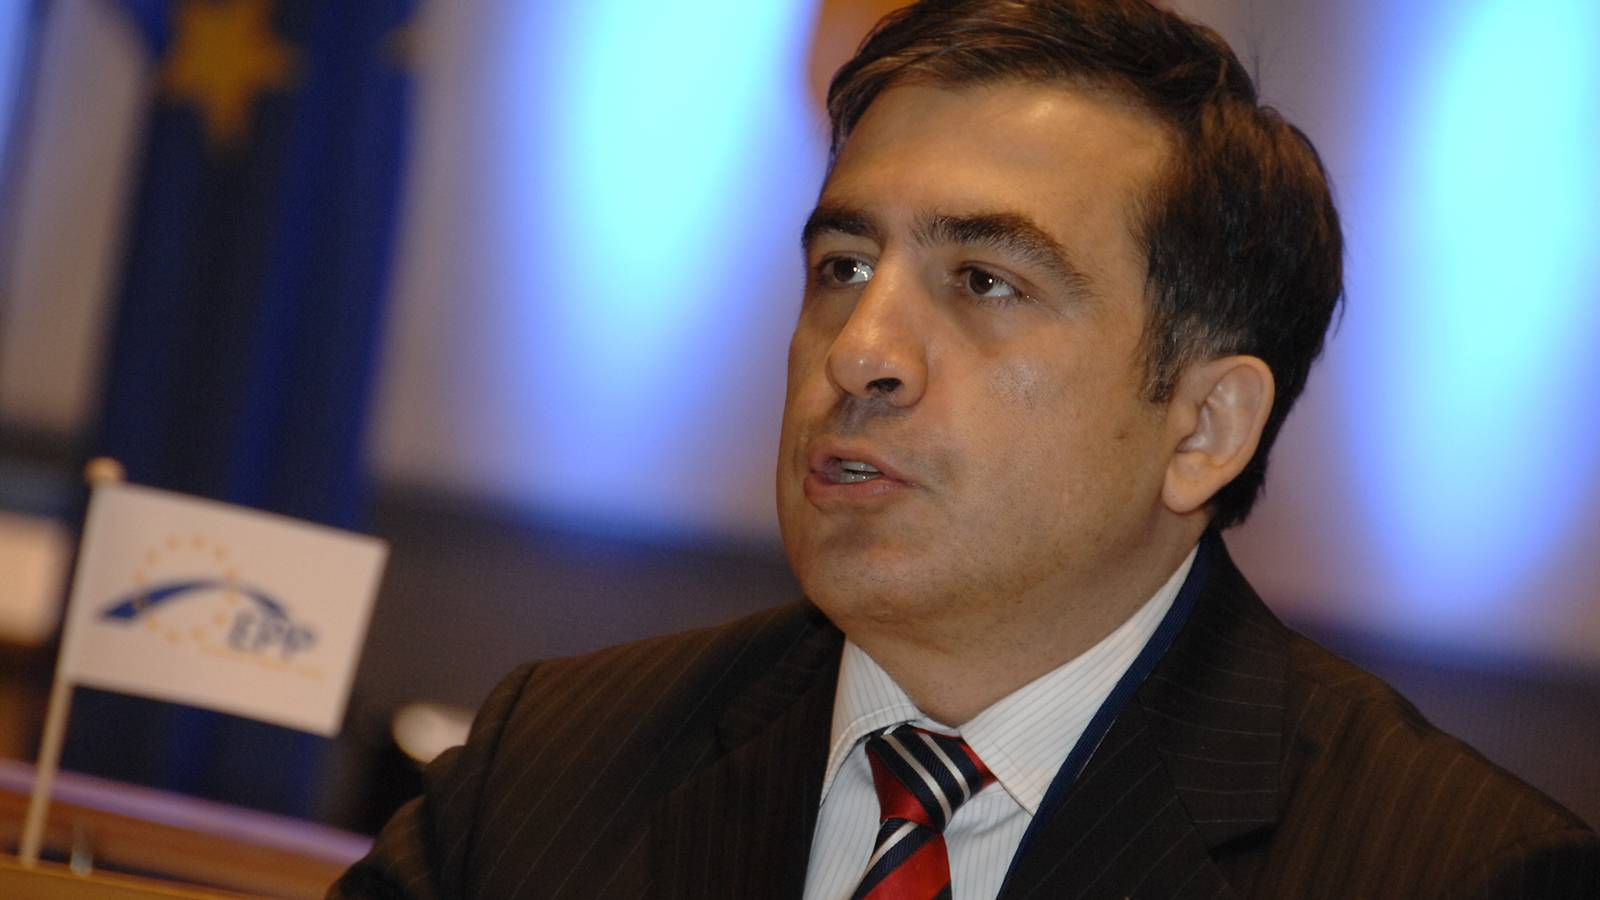 Saakashvili said his first attempt to return to Georgia nearly cost him his life